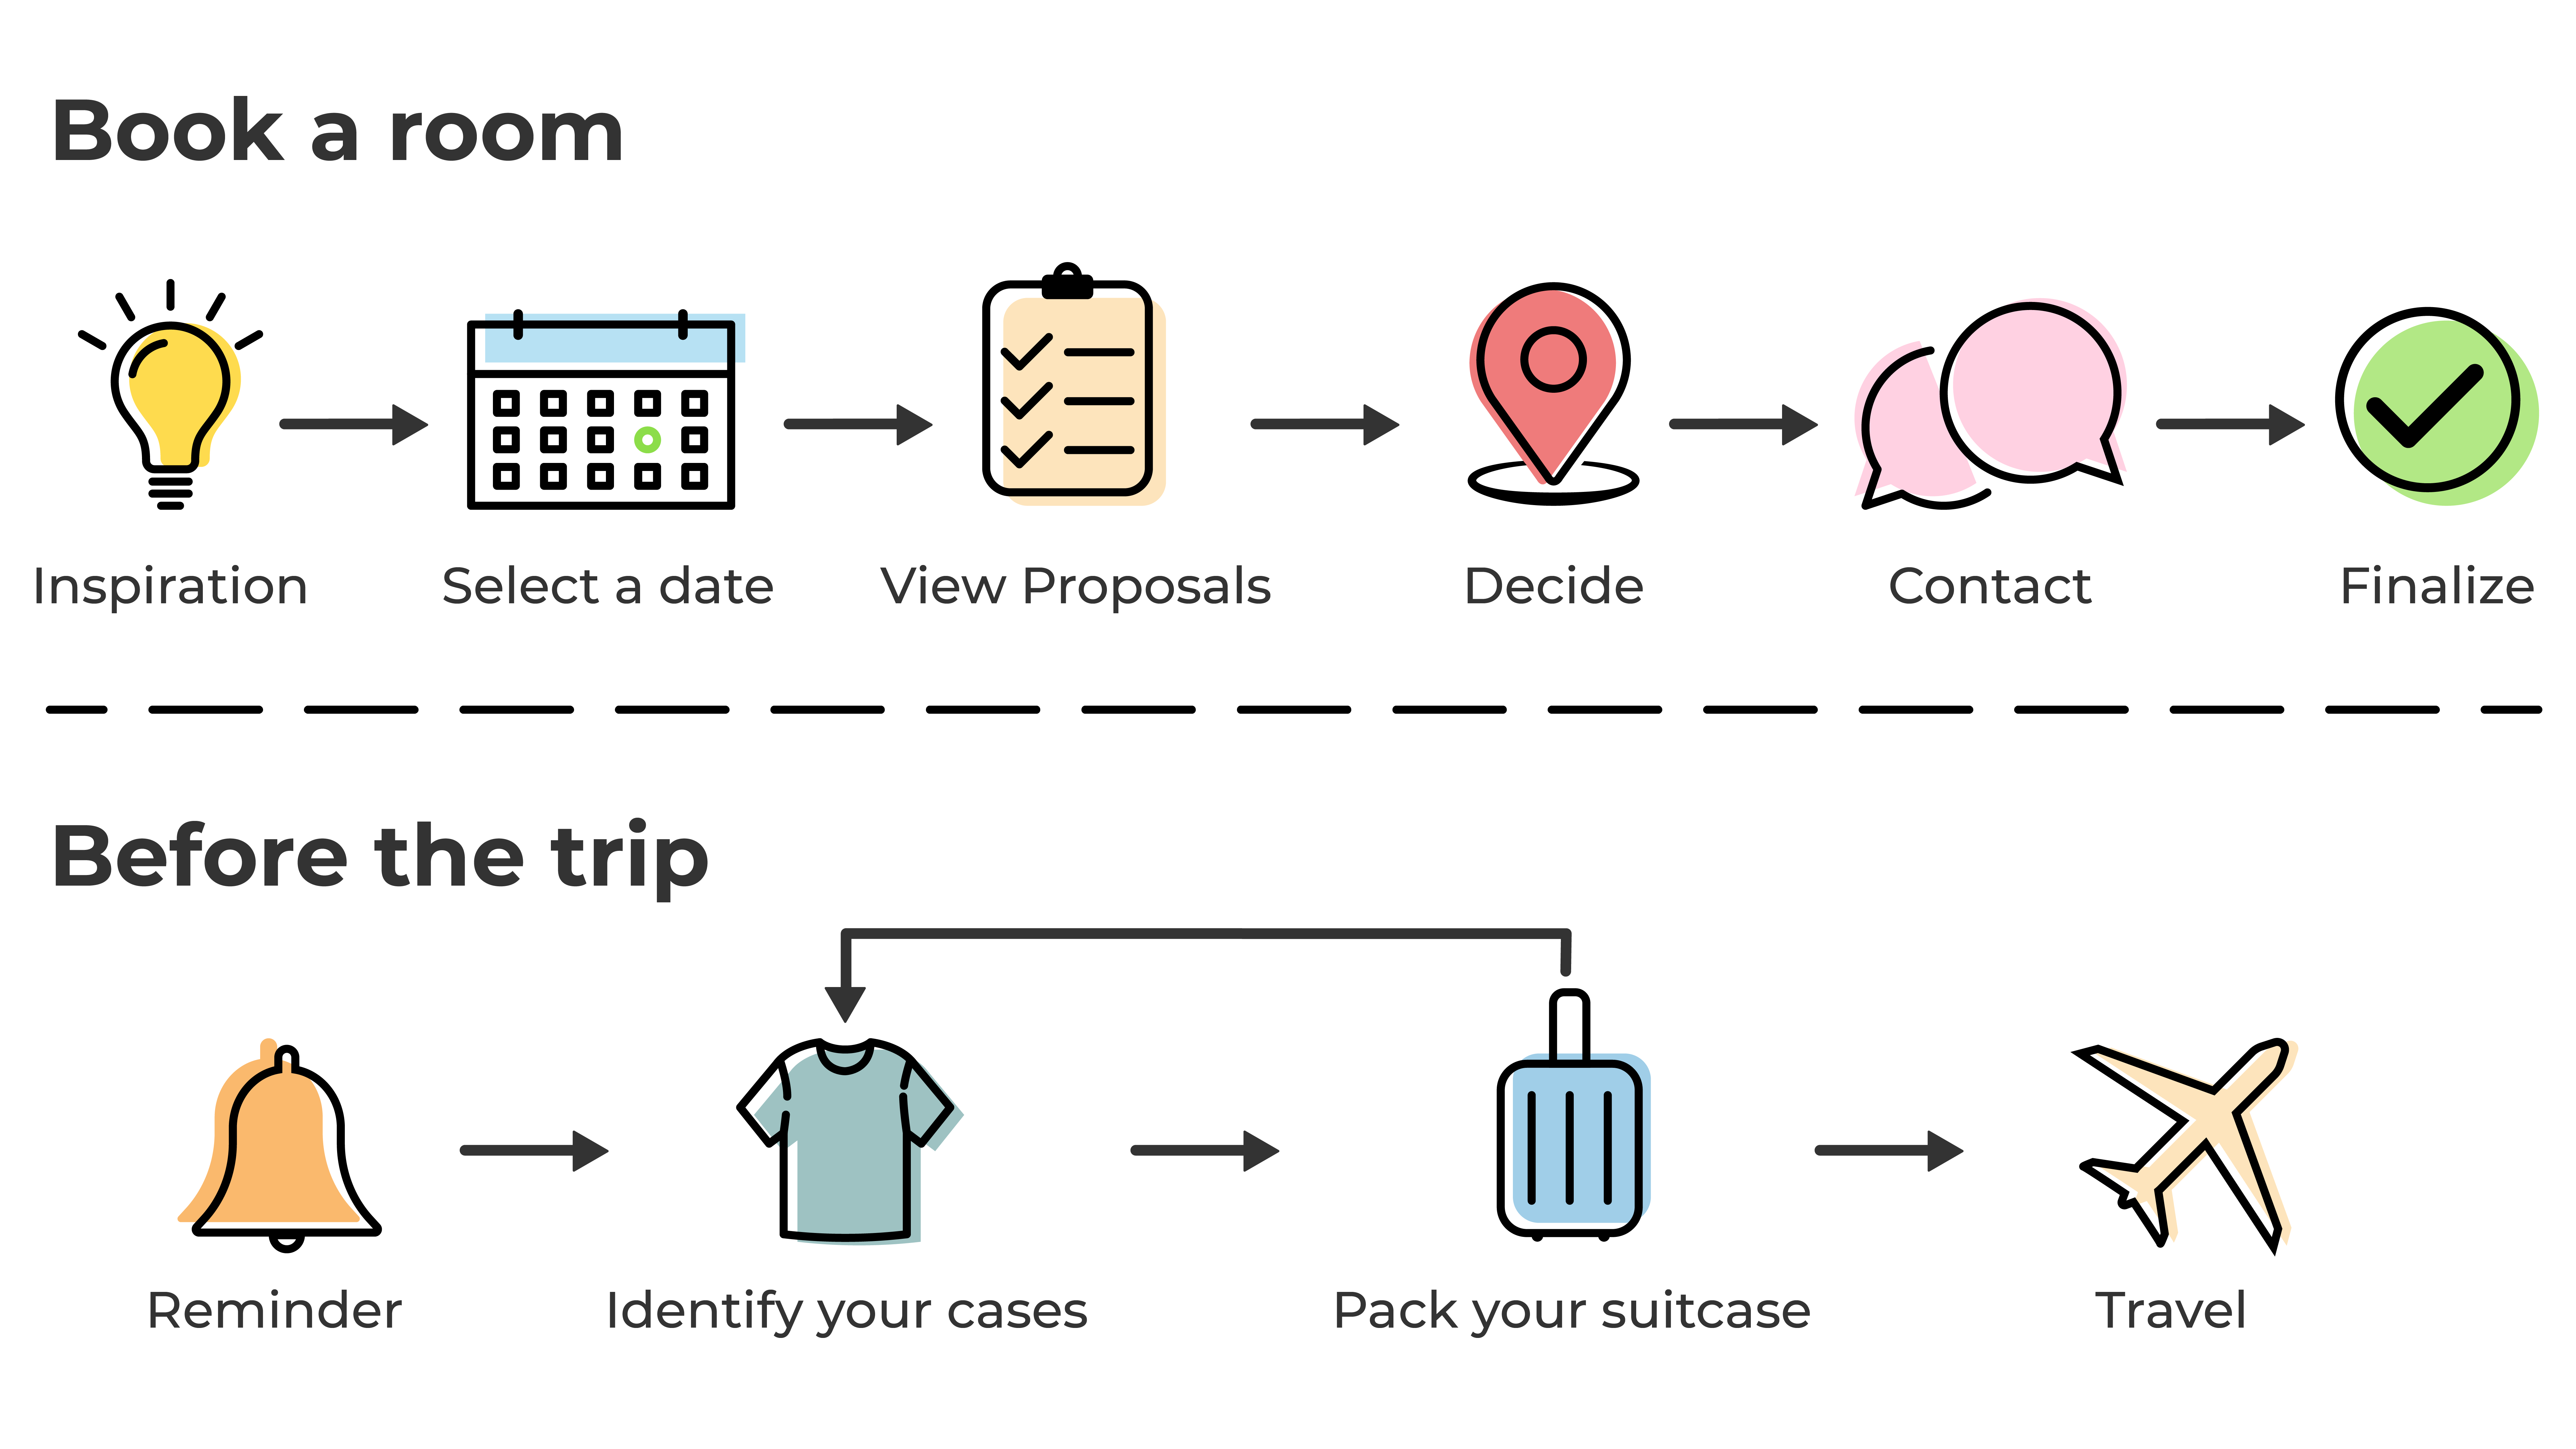 2 schematic customer itineraries: one for the room reservation (get inspired, select a date, look at the proposals, decide, communicate, finalize). a second one for the preparation of the trip (reminder of the trip, identification of their belongings, pac